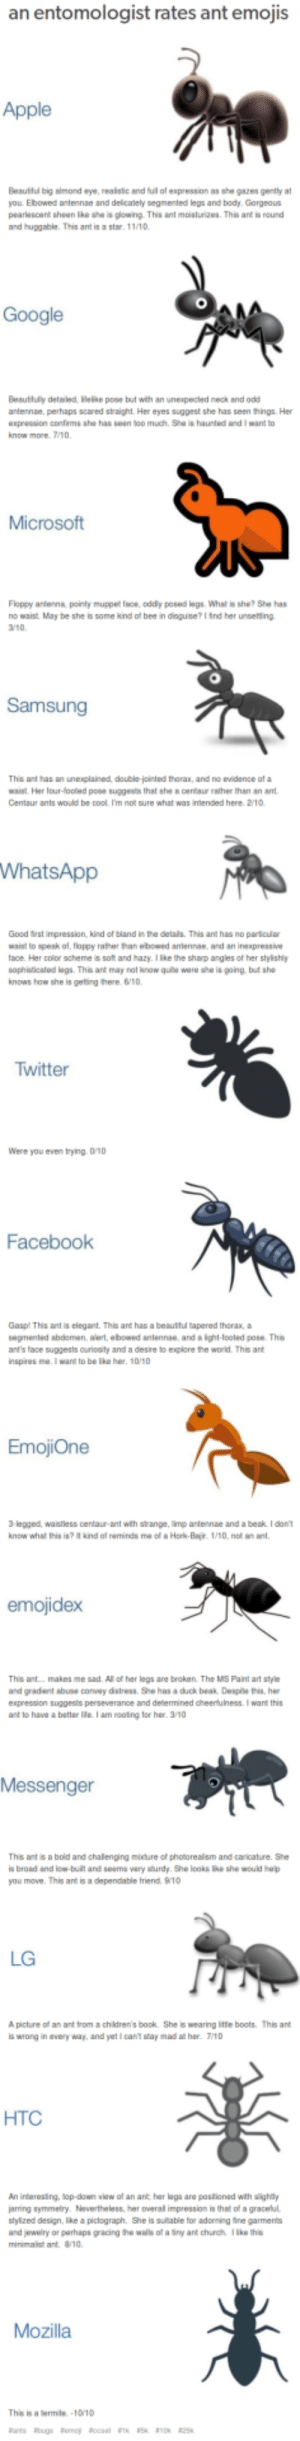 An entomologist rates the ant emojis via /r/funny https://ift.tt/2AJ9ifk: an entomologist rates ant emojis  Apple  Beautful big almand eye, realistic and fuil of espression as she gazes gently at  you. Ebowed antennze and delicately segmented legs and body. Gorgeous  pearascent shean lke slhe is glowing This ant moisturizes. This ant is round  and huggable. This ant is a star 11/10  Google  Beautfully detailed, elike pose but with an unexpecled neck and odd  antennae, perhaps scared straight. Her eyes sugpest she has seen things. Her  eepression confirms she has seen too much, Sha is haunted and I want to  know more7/10  Microsoft  Floppy antens pointy muppet fsc, oddy posed legs. What is she? She has  no waist. May be she ls some kind of bee in doguise? l ind her unsetting  3/10  This ant has an unexplained, double jointed thorax, and no evidence of a  ist Her four-looled pose suggests that she s centaur rather than an ant  ants would be  re what was iniended here. 2/10  WhatsApp  Good rst impression, kind of bland in the details. This ant has no parscular  waist to speak of, floppy rather han ebowed anlennae, and an inexpressive  face. Her color scheme is soft and hazy. Iike the sharp angles of her styishly  sophisticated laga. This ant may not know quie were she is going, but she  knows how she is geting there.6/10  Twitter  Were you even trying 0/10  Facebook  Gasp This ant is elegant. This ant has a beauttul tapered thorax, a  segmented abdomen, alert, ebowed antennae, and a ight-looled pose. This  ant's face supgests ouriosity and a desire to explore the world. This ant  nspires me. I want to be ike her 10/10  EmojiOne  3-legged. waistless centaurant with strange, linp antennae and a beak. I囟n't  know what this is kind af reminds me of & Hork-Bair 1/0, not n ant  emojidex  This ant... makes me sad. All of her legs are broken The MS Paint art style  and gradent abuse cowey distress. She has a duck beak Despie his, her  expresnon suggests perseveranoe and determined deertless י want this  ant to have a better Iite.I am rooting for her. 3/10  Messenger  This ant is a bold and challenging mbture of photorealism and caricature. She  is broad and low-bull and seerns very sturdy. She looks like sh๑ would help  you mave. This ant is a dependable friend. 9/10  LG  A picture of an ant from a children's book. She is wearing Ittle boots. This ant  is wrong irevery way, and yet I can't stay mad齜her. T/10  HTC  An interesing, op-down view of an ant, her legs are postioned with sighdy  iamng symmetry Nevertheless, her overal impresson that of a gracett  stylzed design, lke a piciograph. She is sutable for adorning fine garments  and jewelry ar parhaps gracing the wals of a Sny ant church 1ike this  Mozilla  This is a Sermile-1010 An entomologist rates the ant emojis via /r/funny https://ift.tt/2AJ9ifk